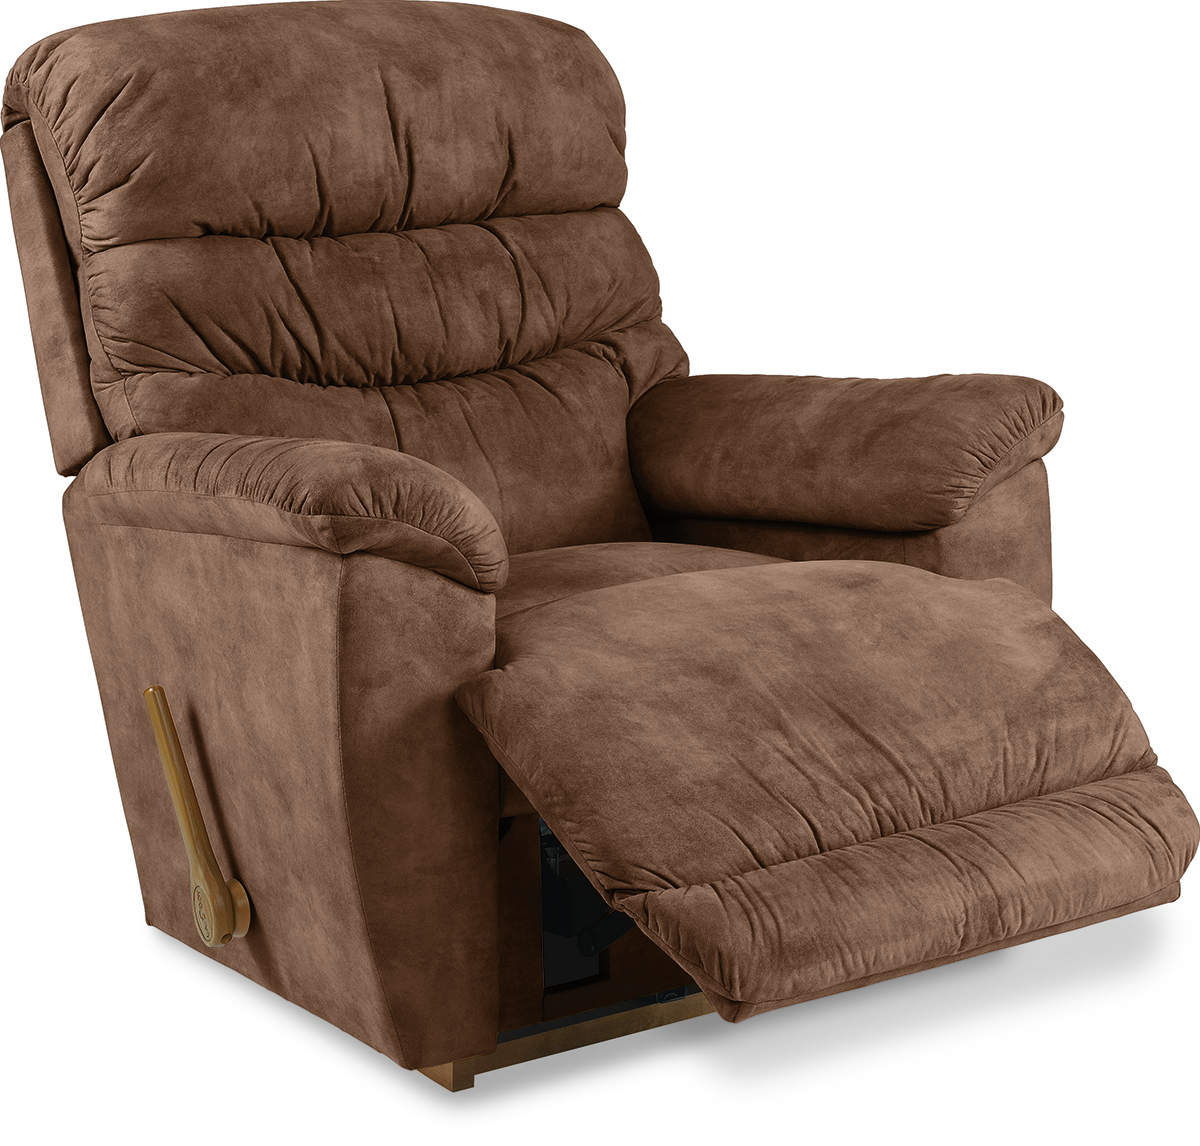 Simple Rules on sofa recliner leather